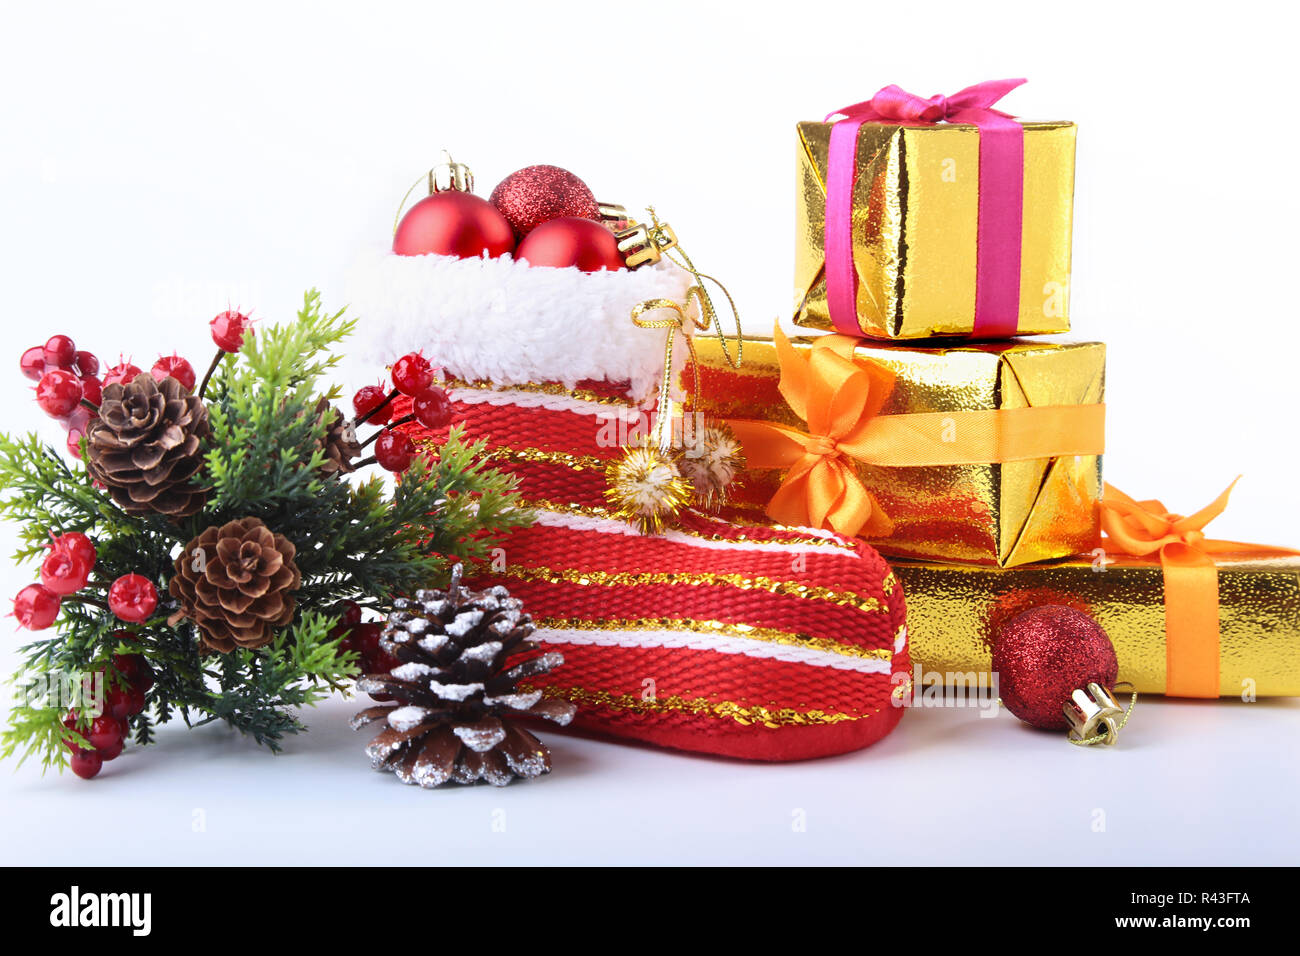 Christmas Shoe.Merry Christmas Composition Santa S Shoe With Gift Boxes On